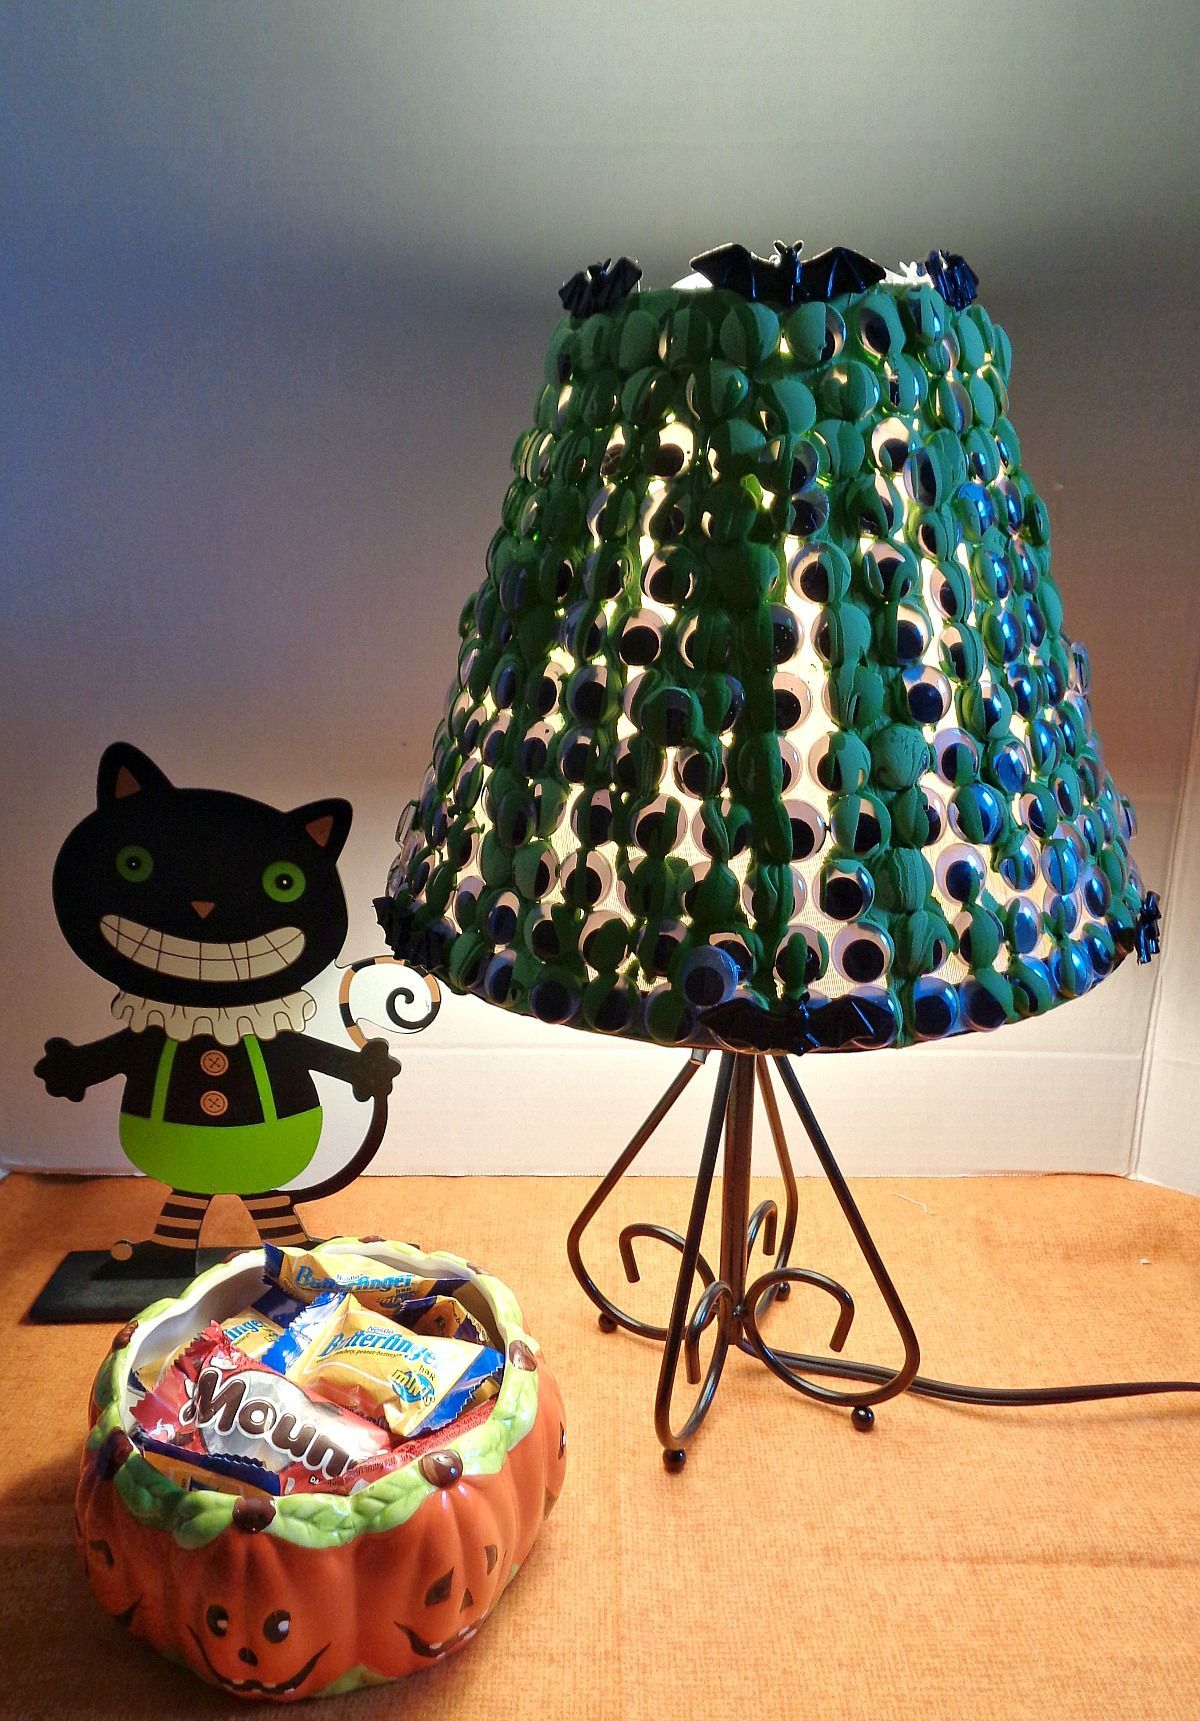 DIY Lampshade Ideas The Best And Brightest